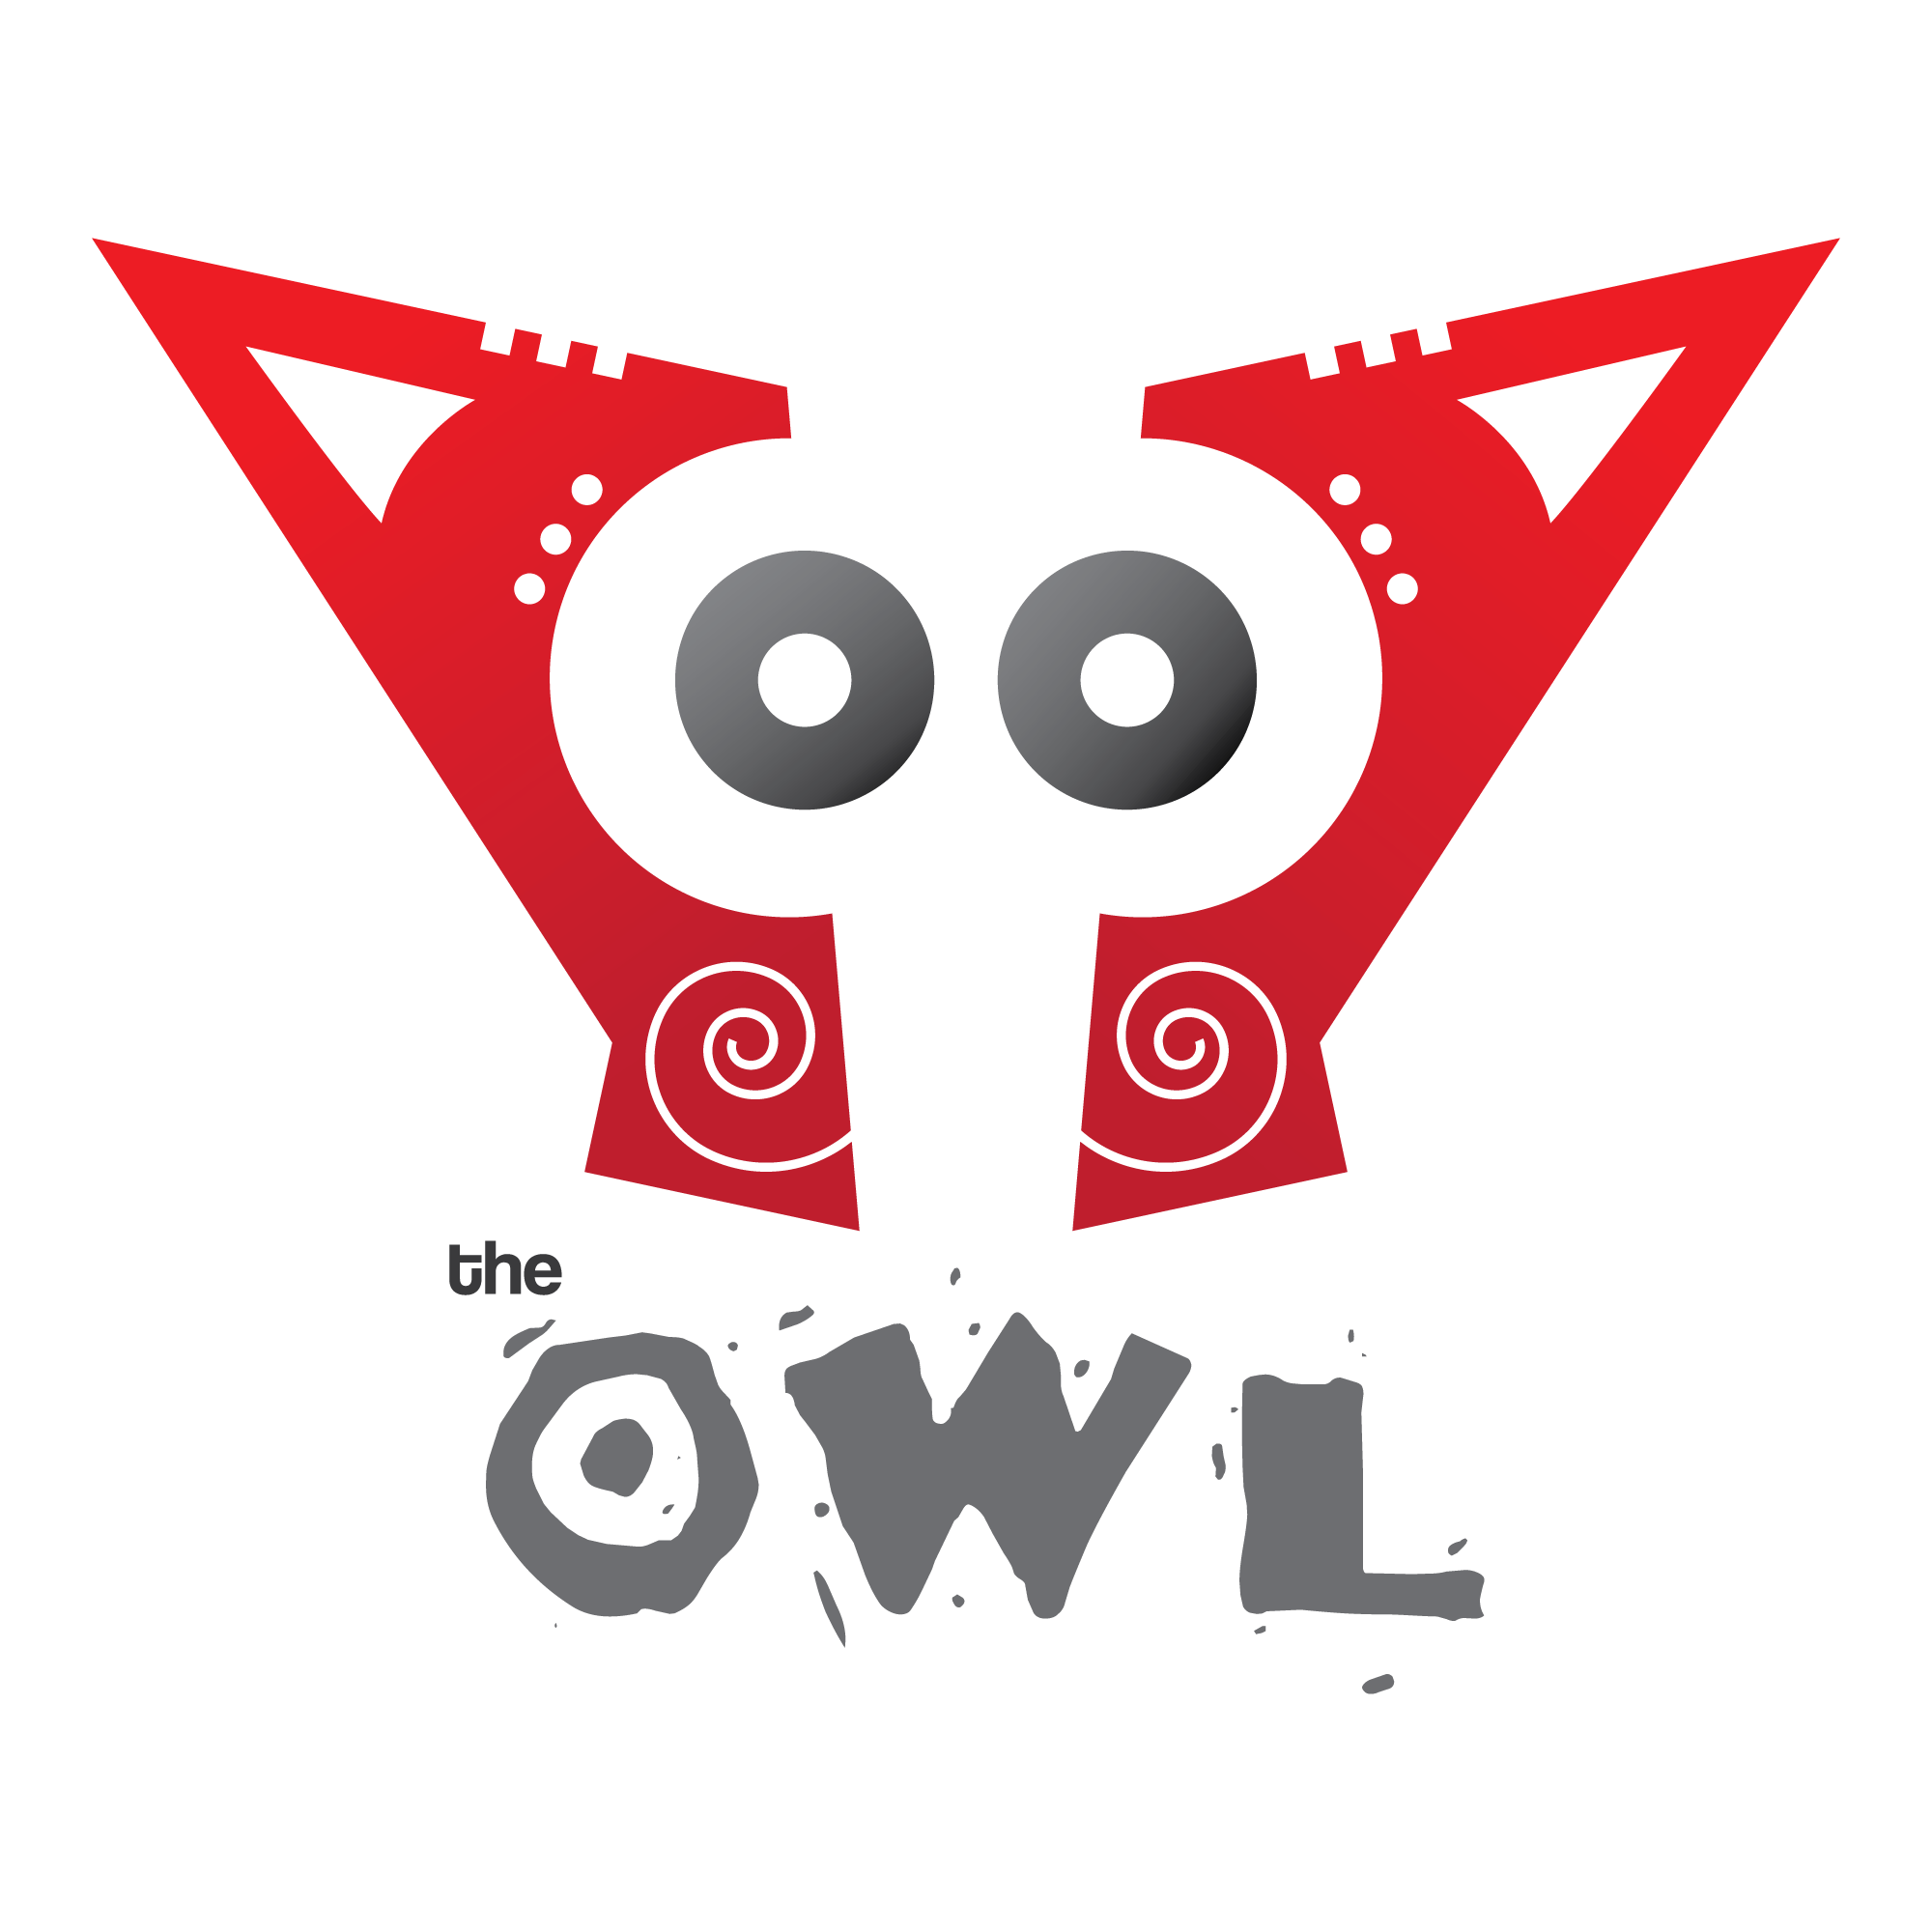 @theowlpy